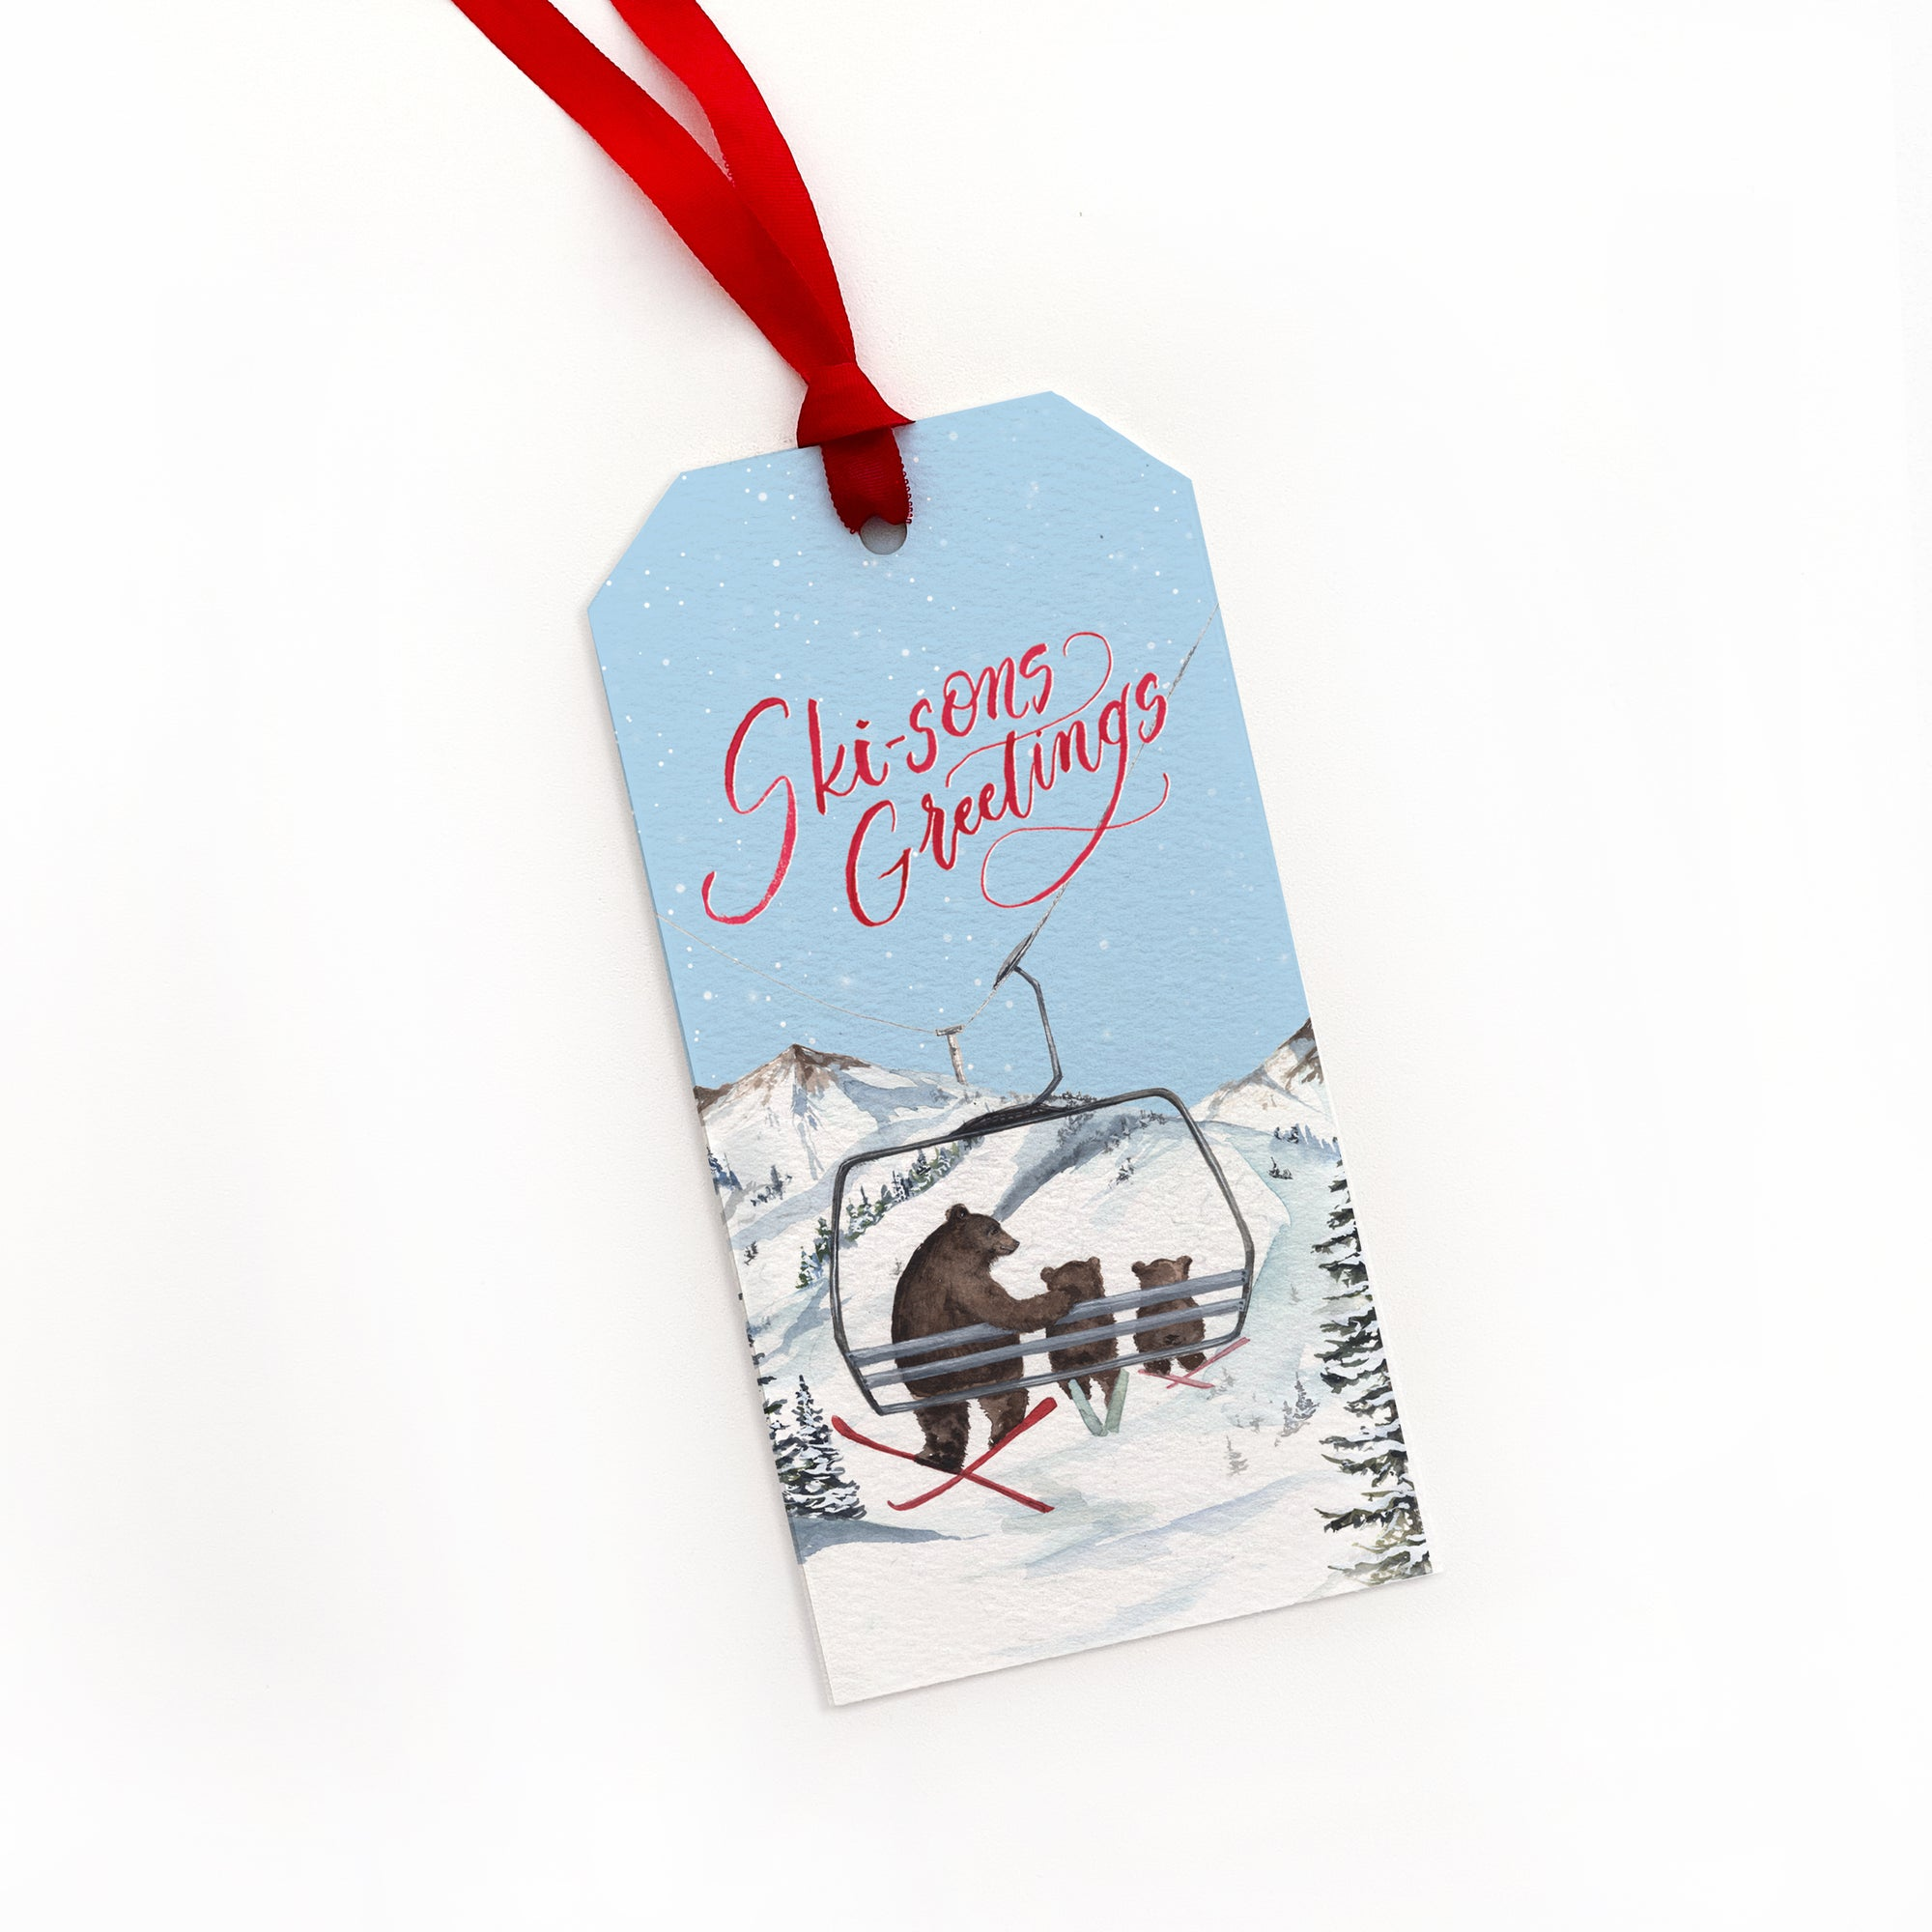 Ski-sons Greetings Gift Tags